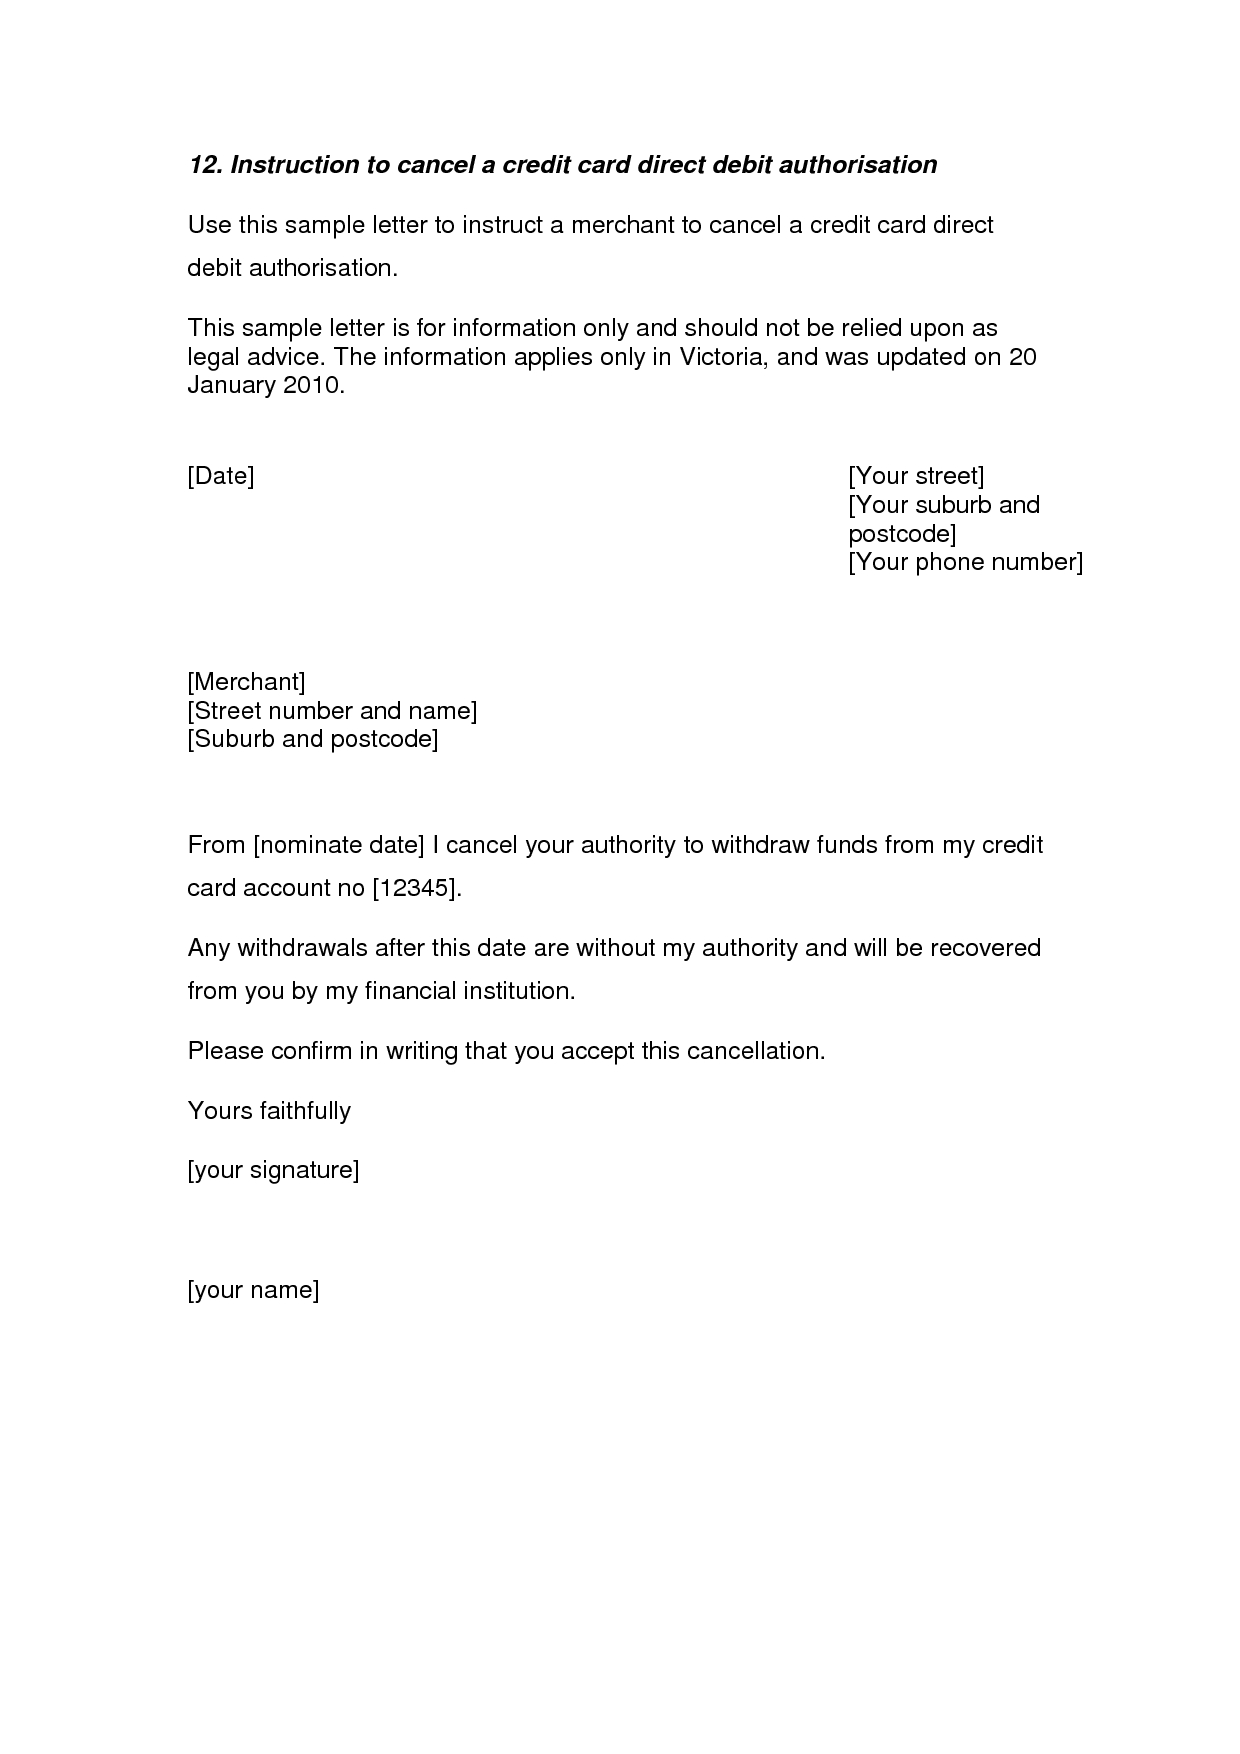 Credit Card Dispute Letter Template - Credit Card Cancellation Letter A Credit Card Cancellation Letter